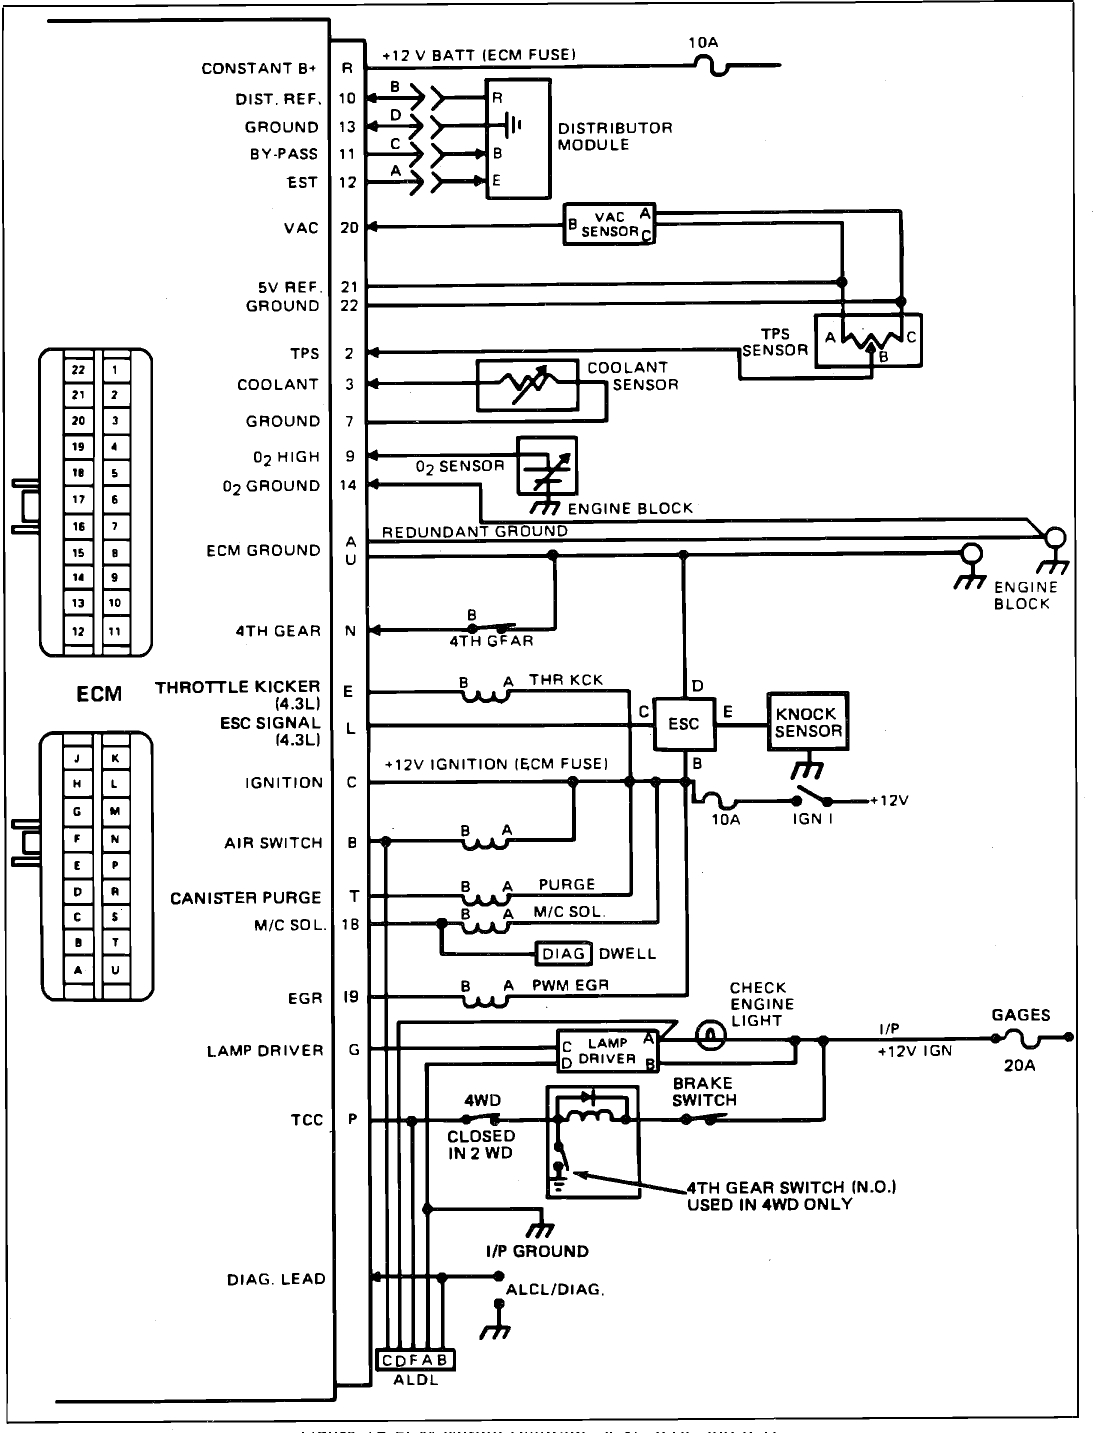 DFE83 95 Chevy Tail Light Wiring Diagram | Wiring Resources on